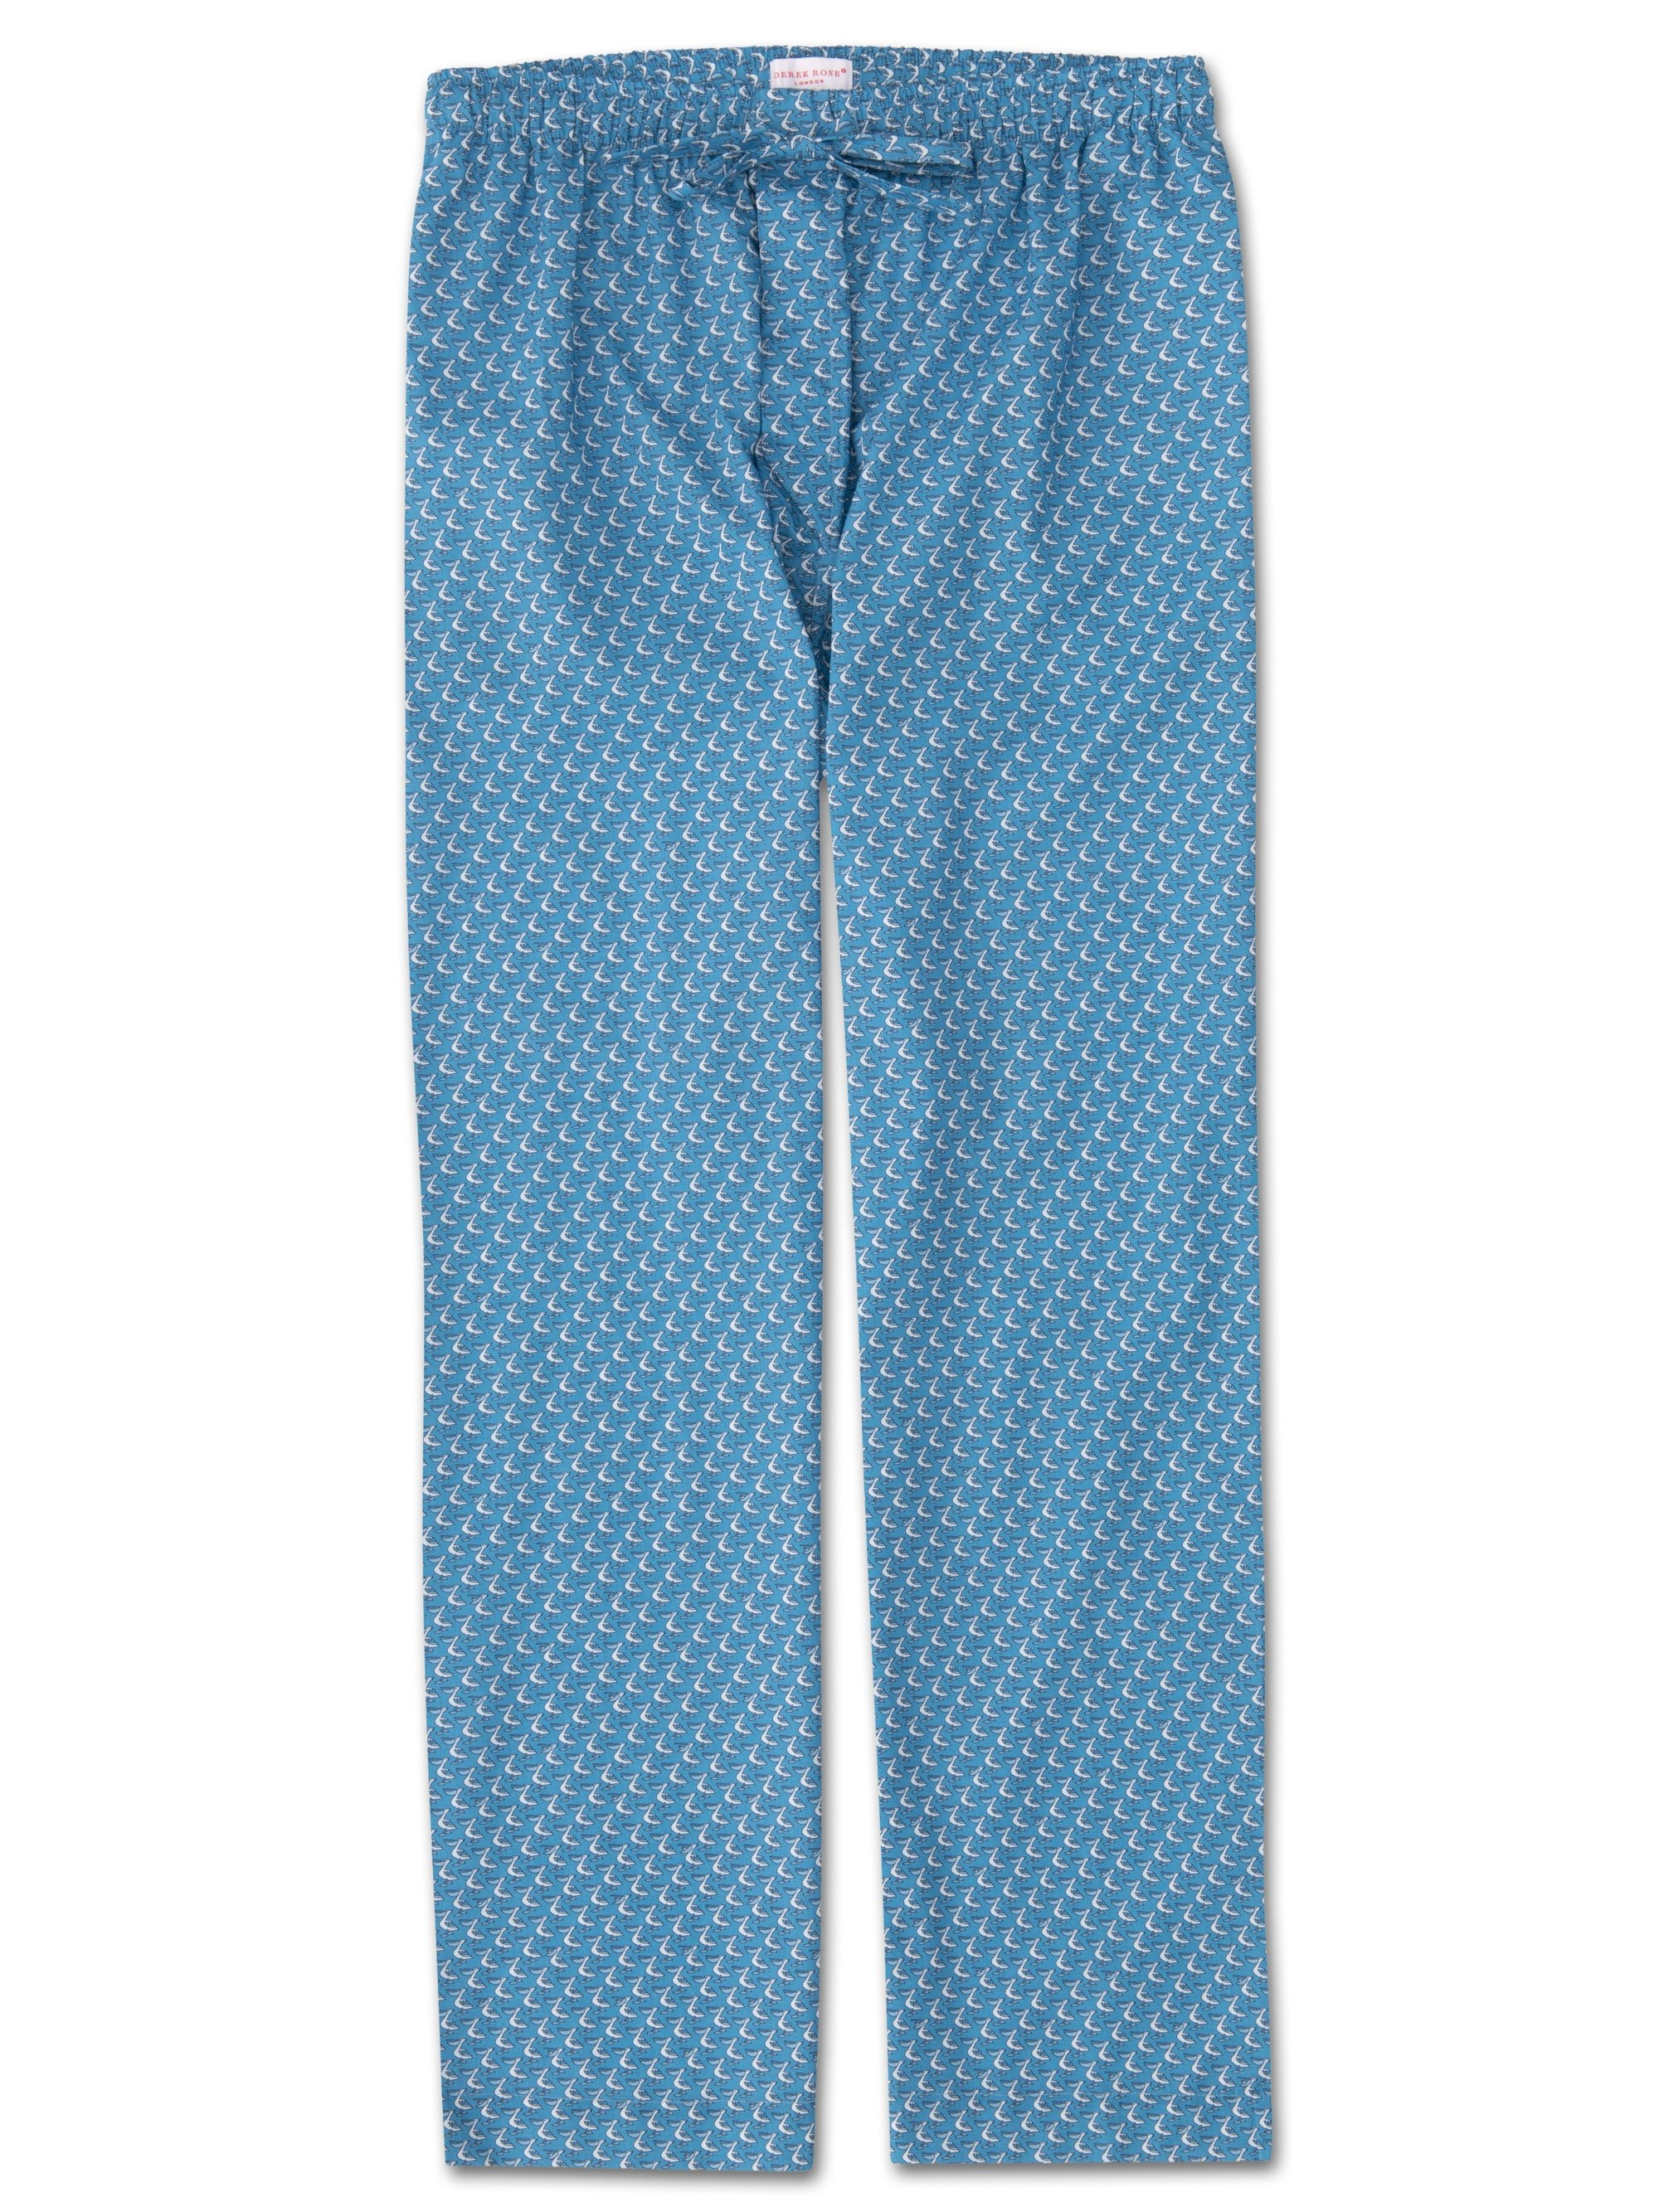 Men's Lounge Trousers Ledbury 16 Cotton Batiste Blue